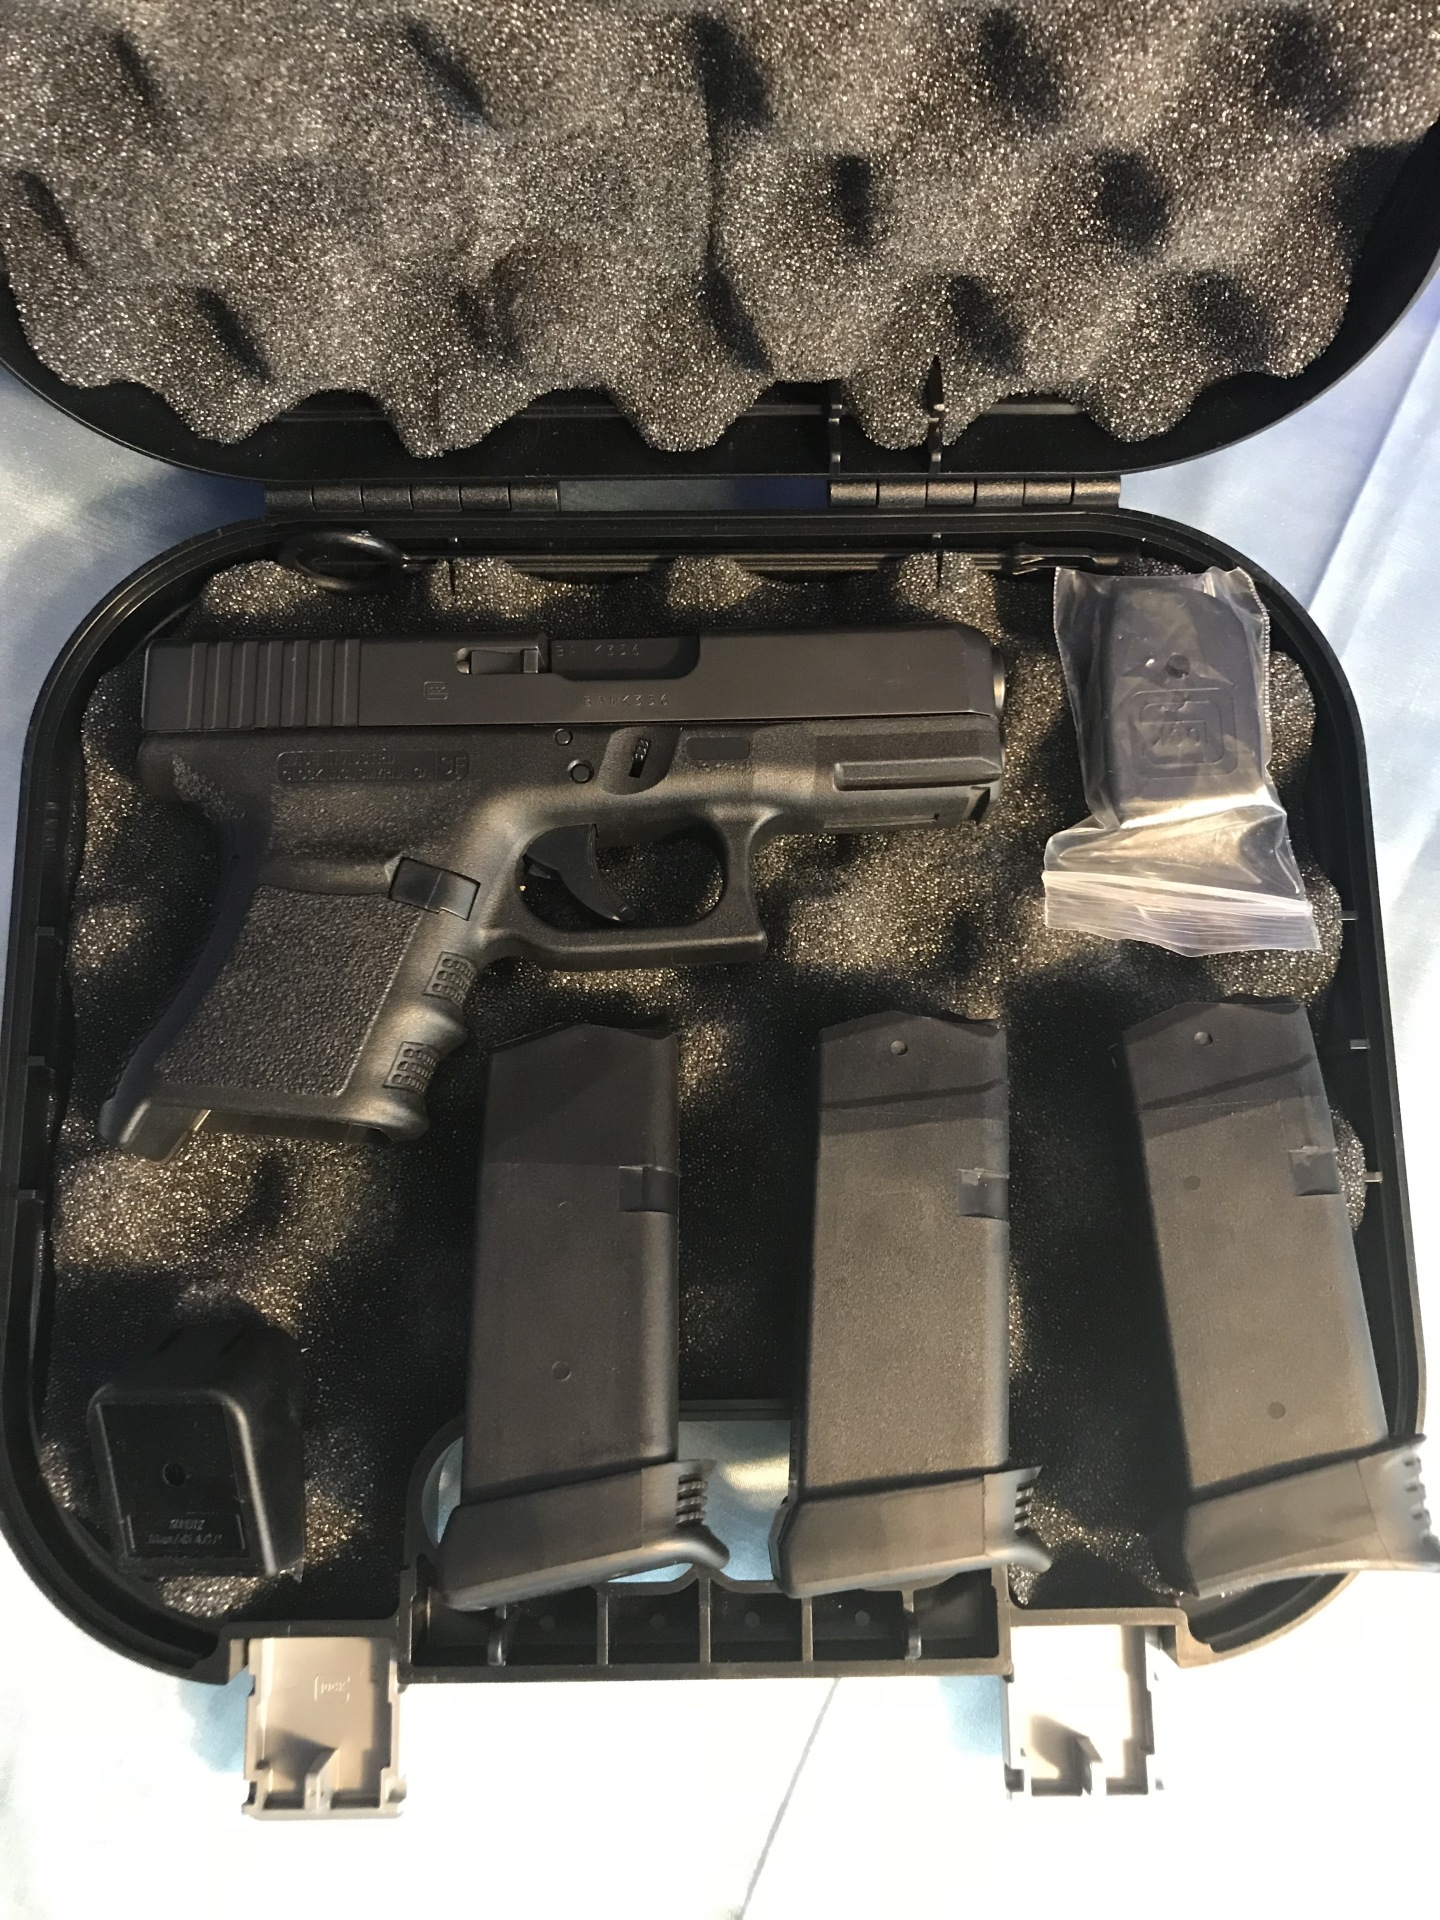 Glock 30S ext mags, 45acp $500